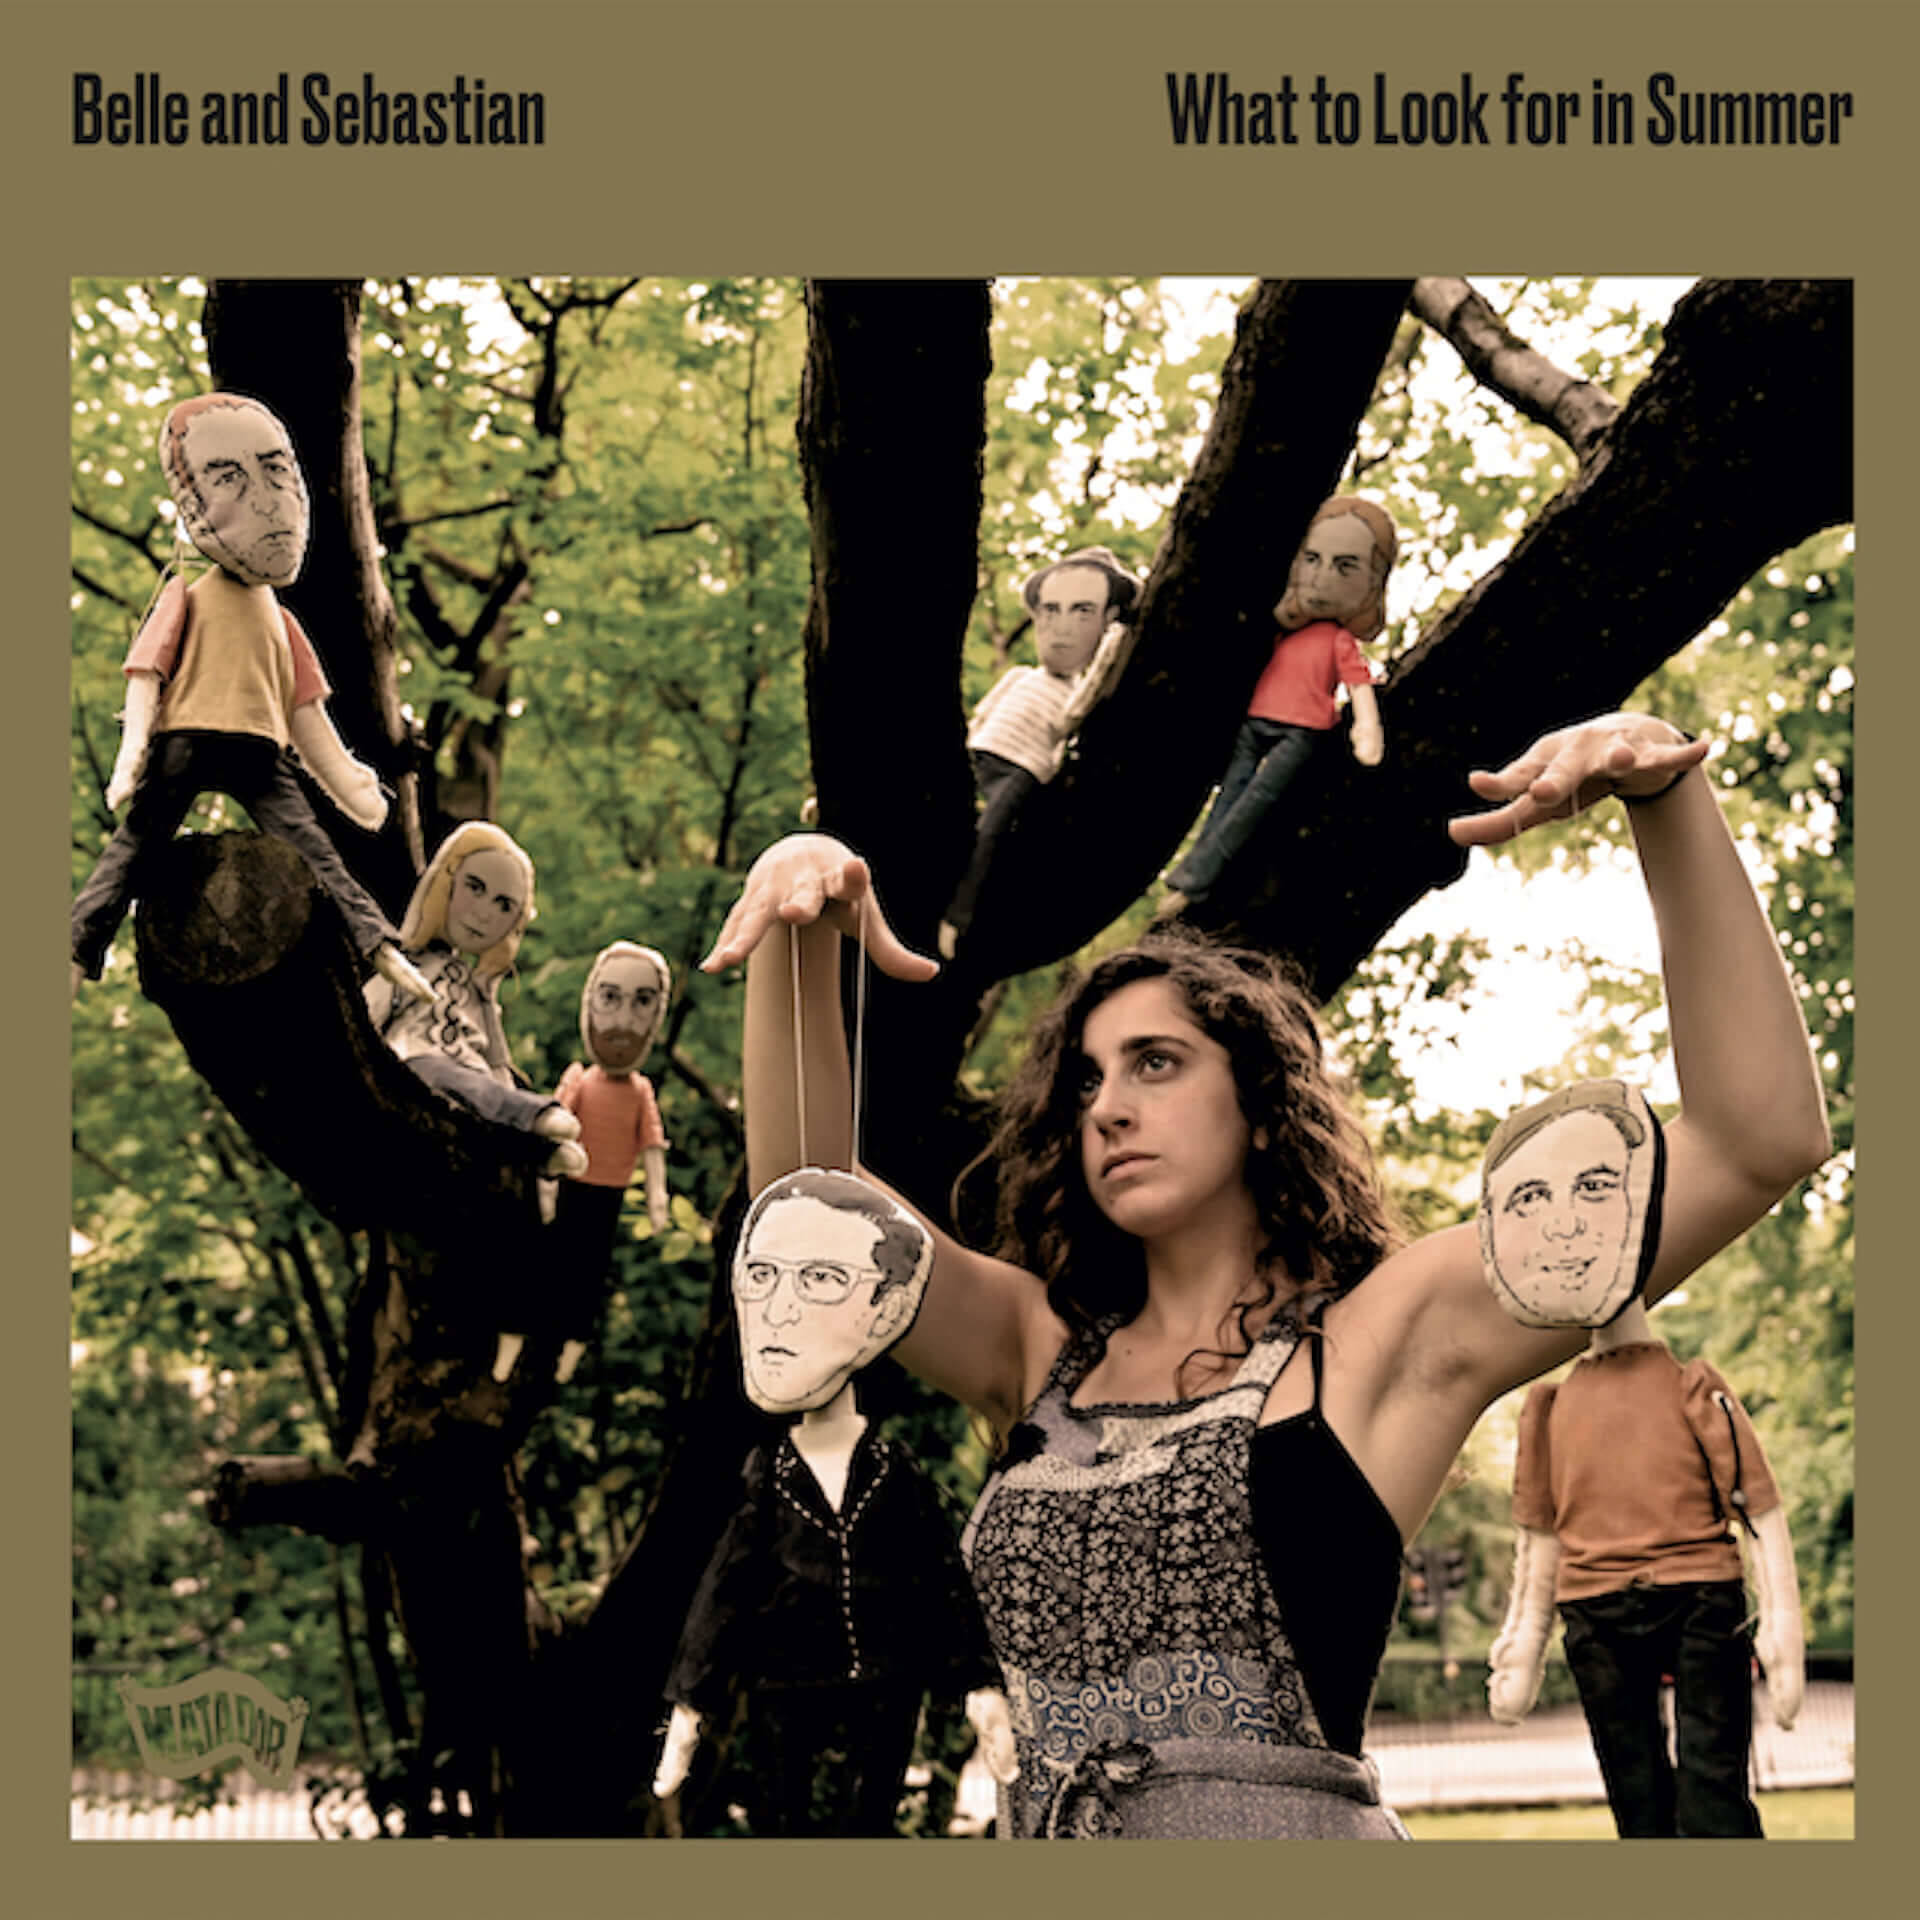 What to Look for in Summer - Belle and Sebastian